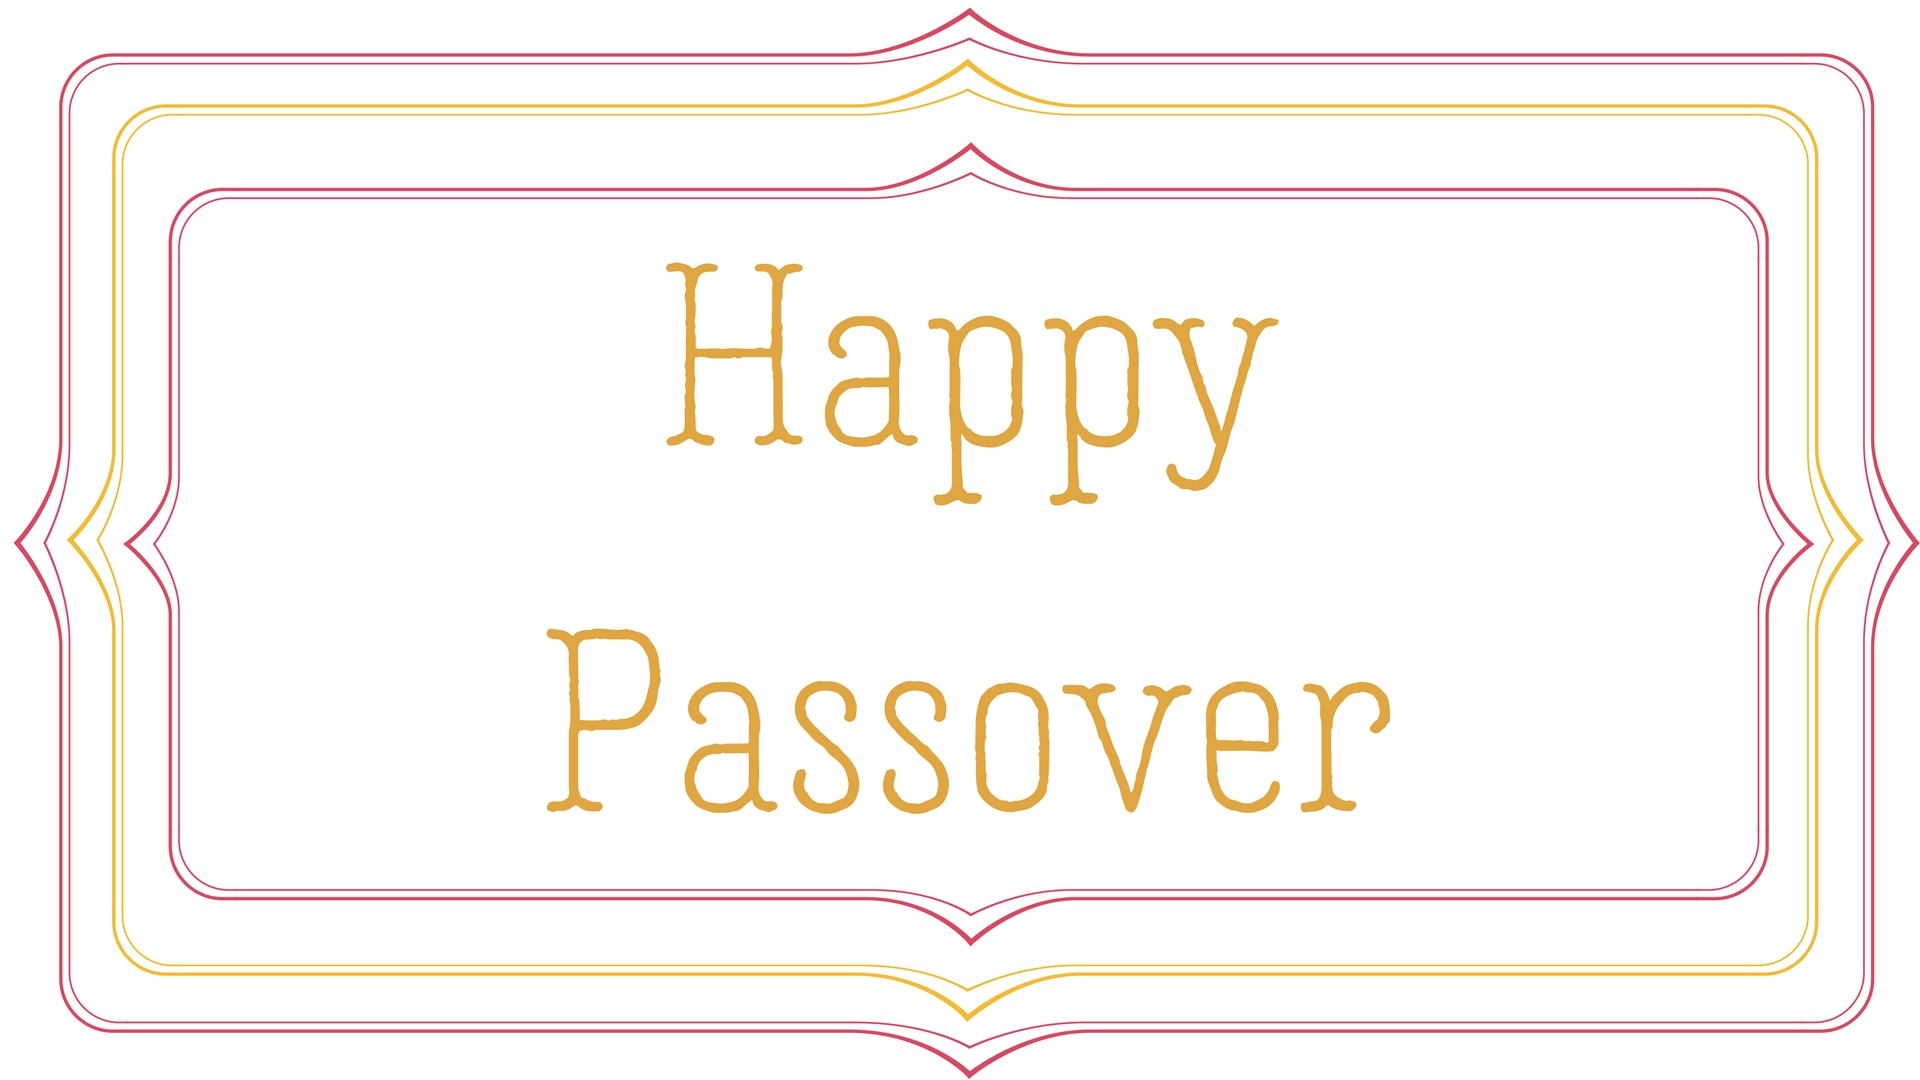 Happy Passover Rectangle Frame Greeting Card Postcard 19